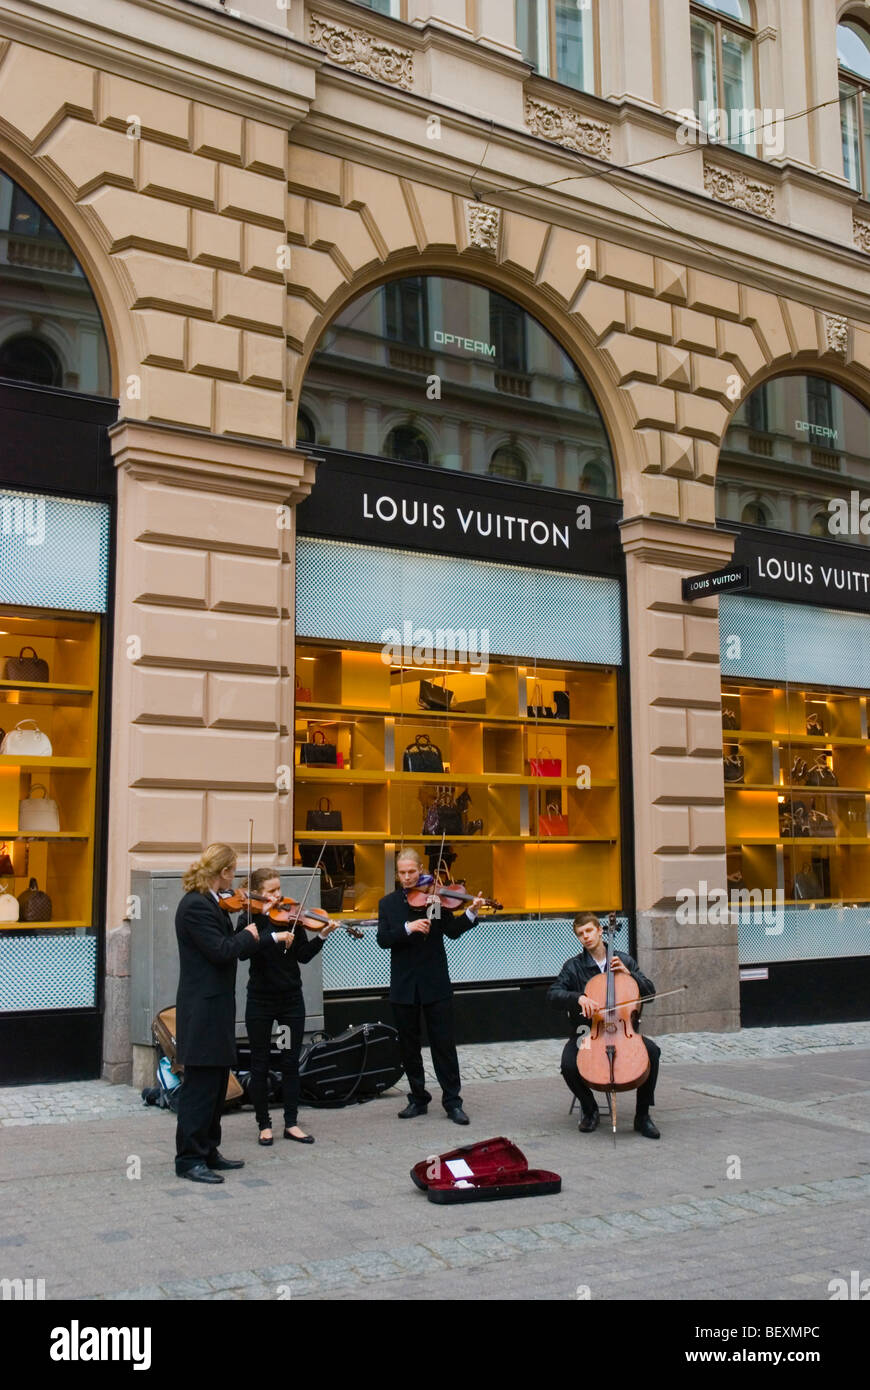 Classical music buskers in front of Louis Vuitton store in central Helsinki Finland Europe - Stock Image